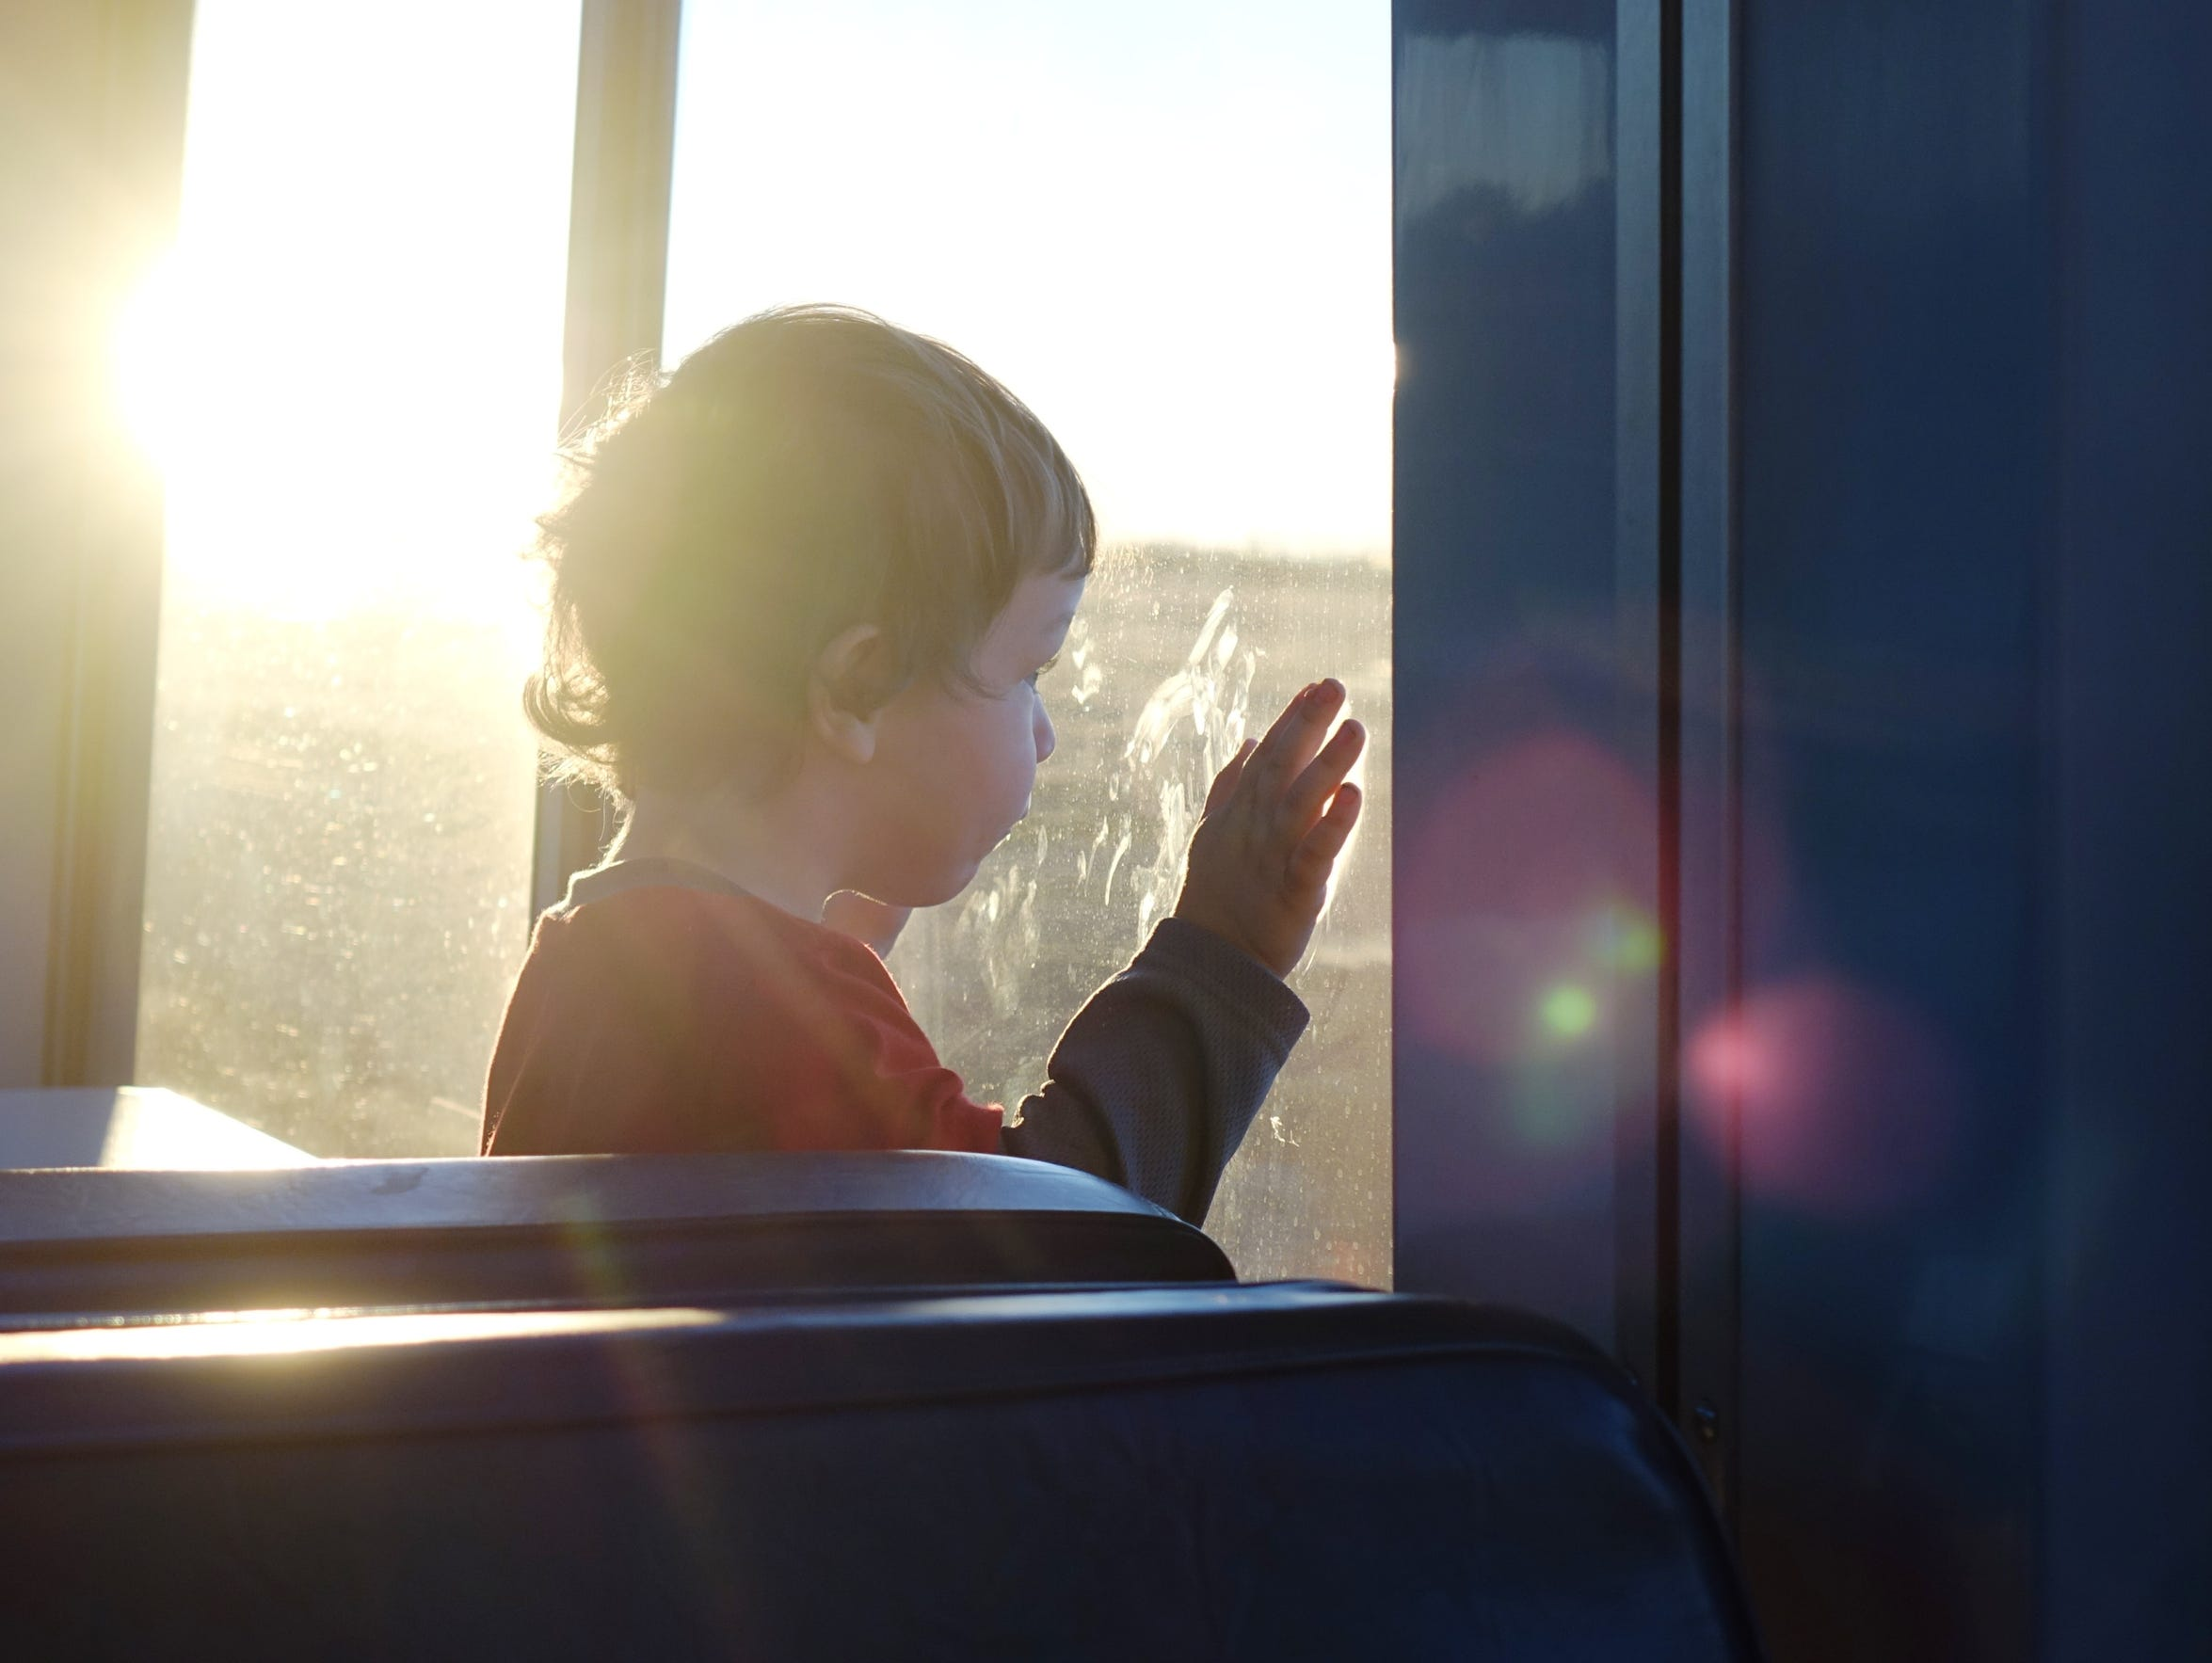 Rafe Smith, 2, peers out the window of Amtrak's Southwest